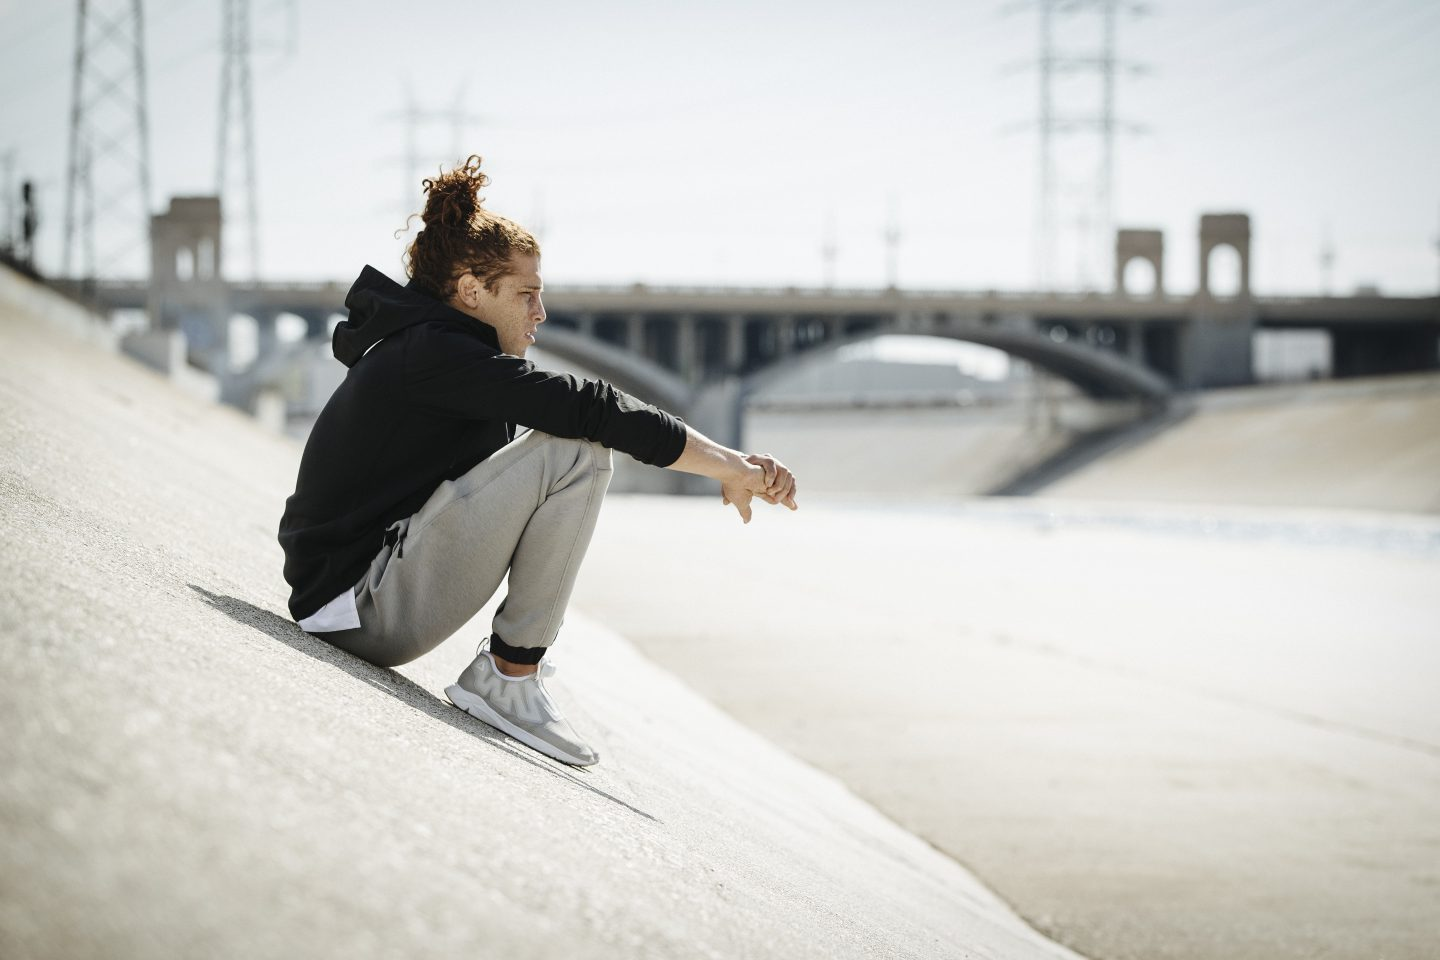 Guy wearing sports clothes sitting on concrete ramp with bridge in the backgruond, urban, urban athlete, workout, after workout, recovering, overview, take a breath, Reebok, GamePlan A